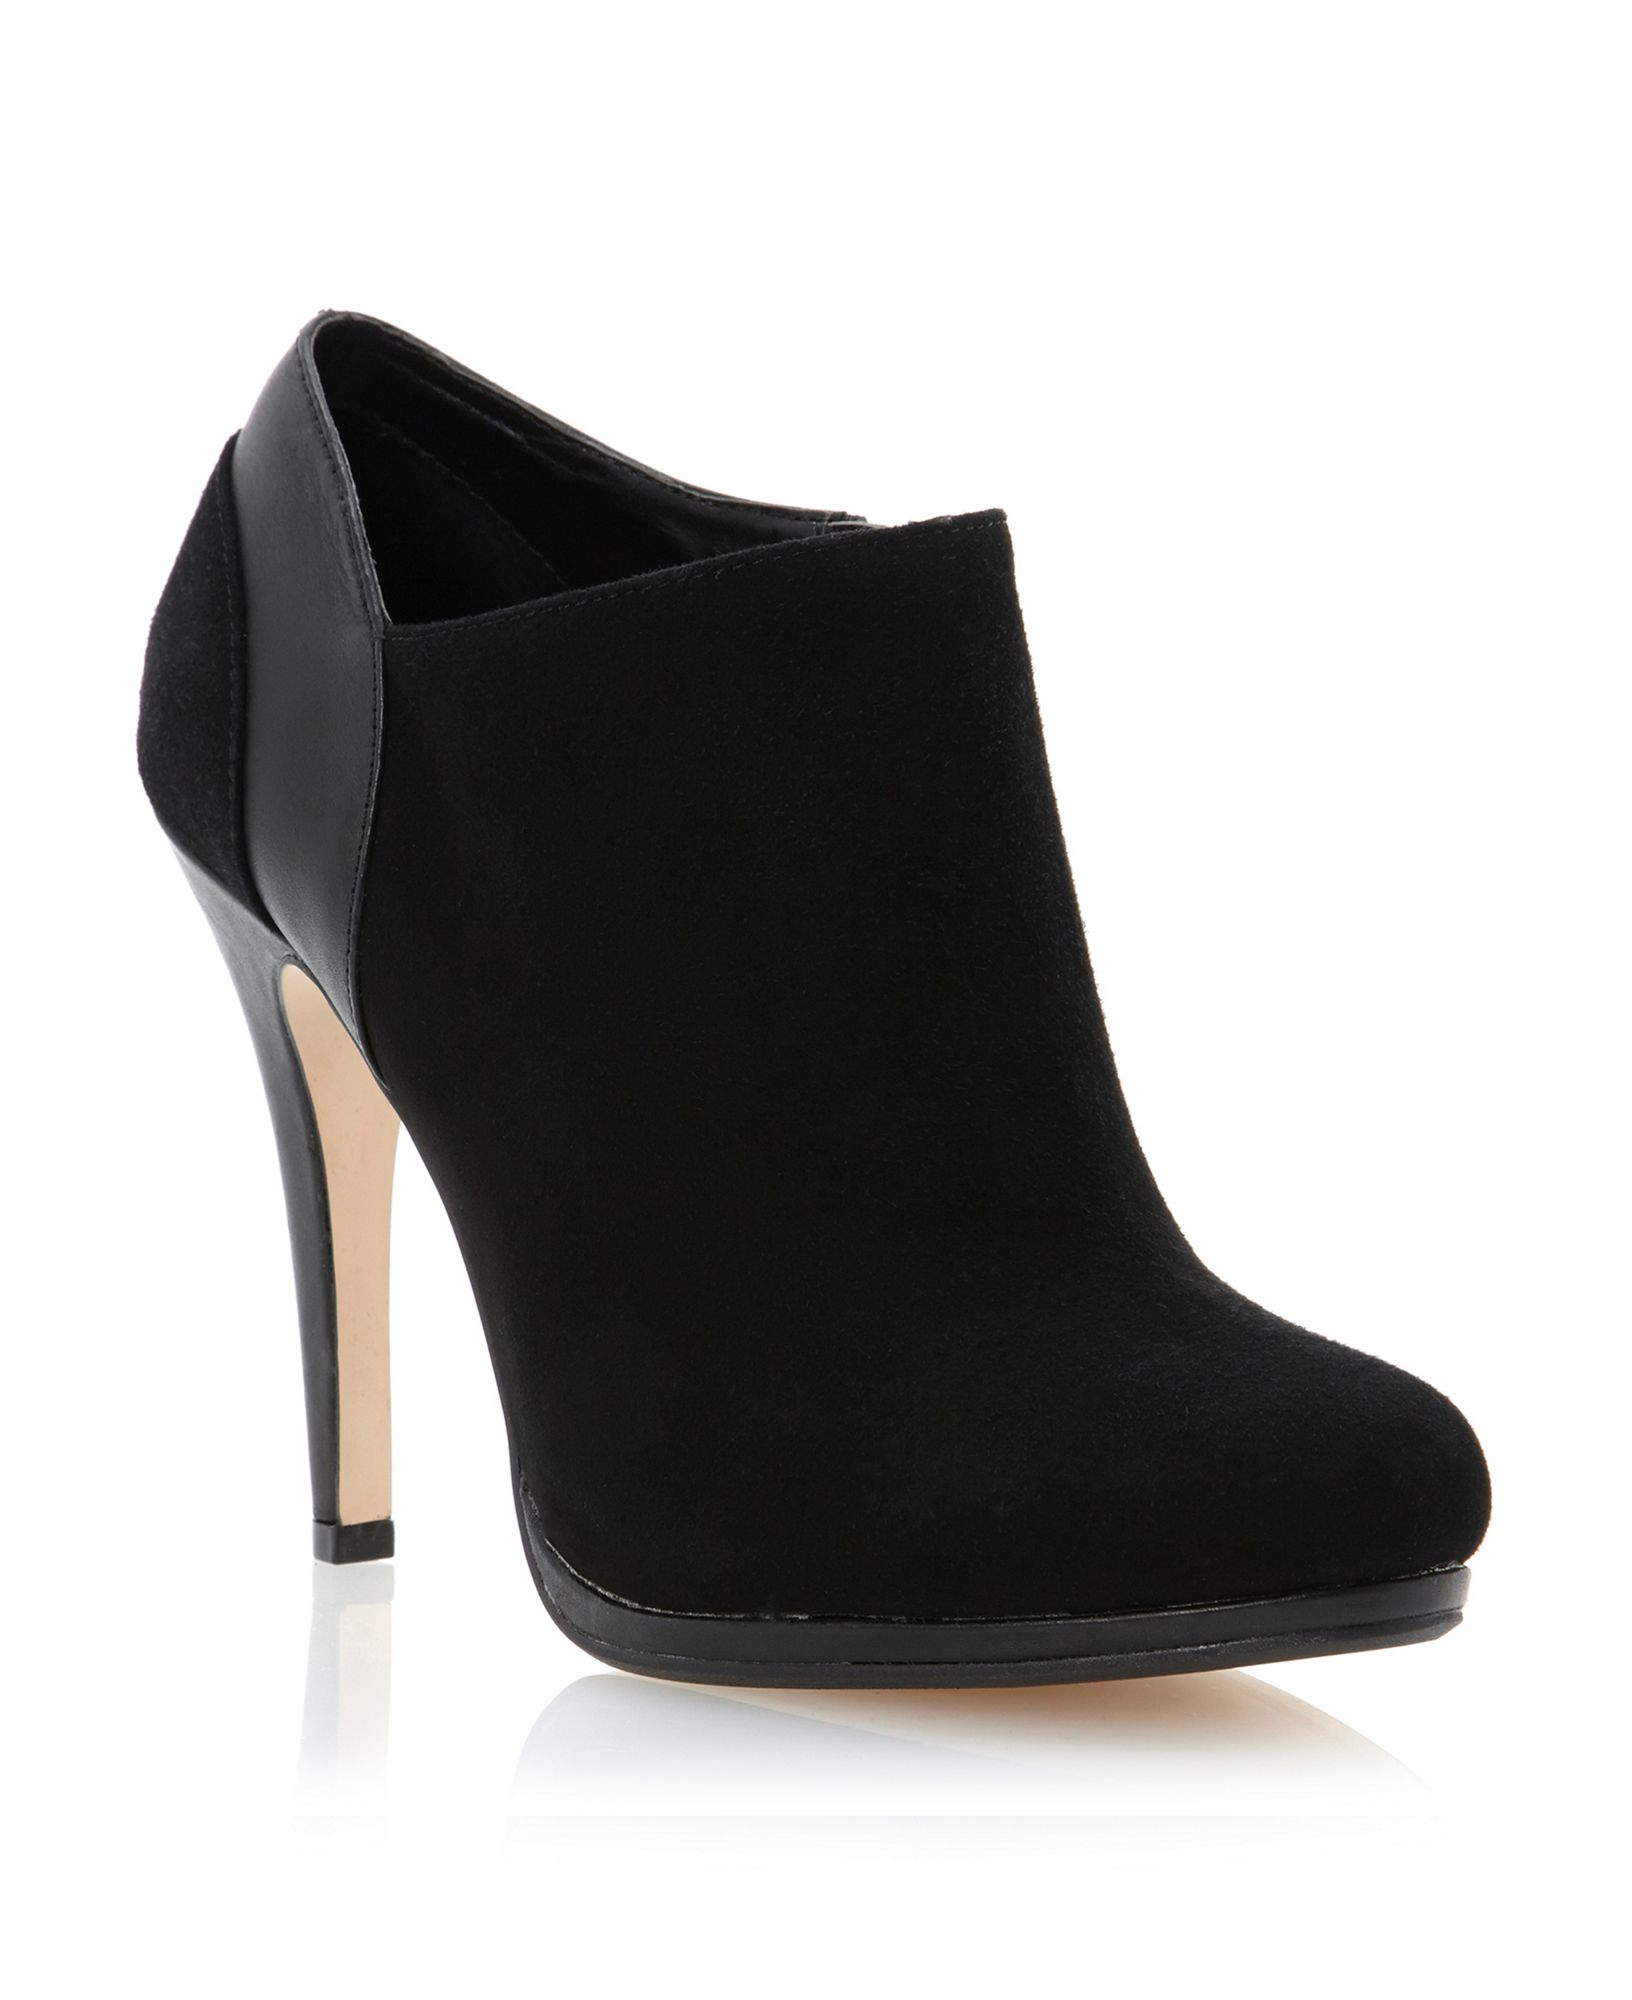 dune adorn suede leather mix shoes boots in black black